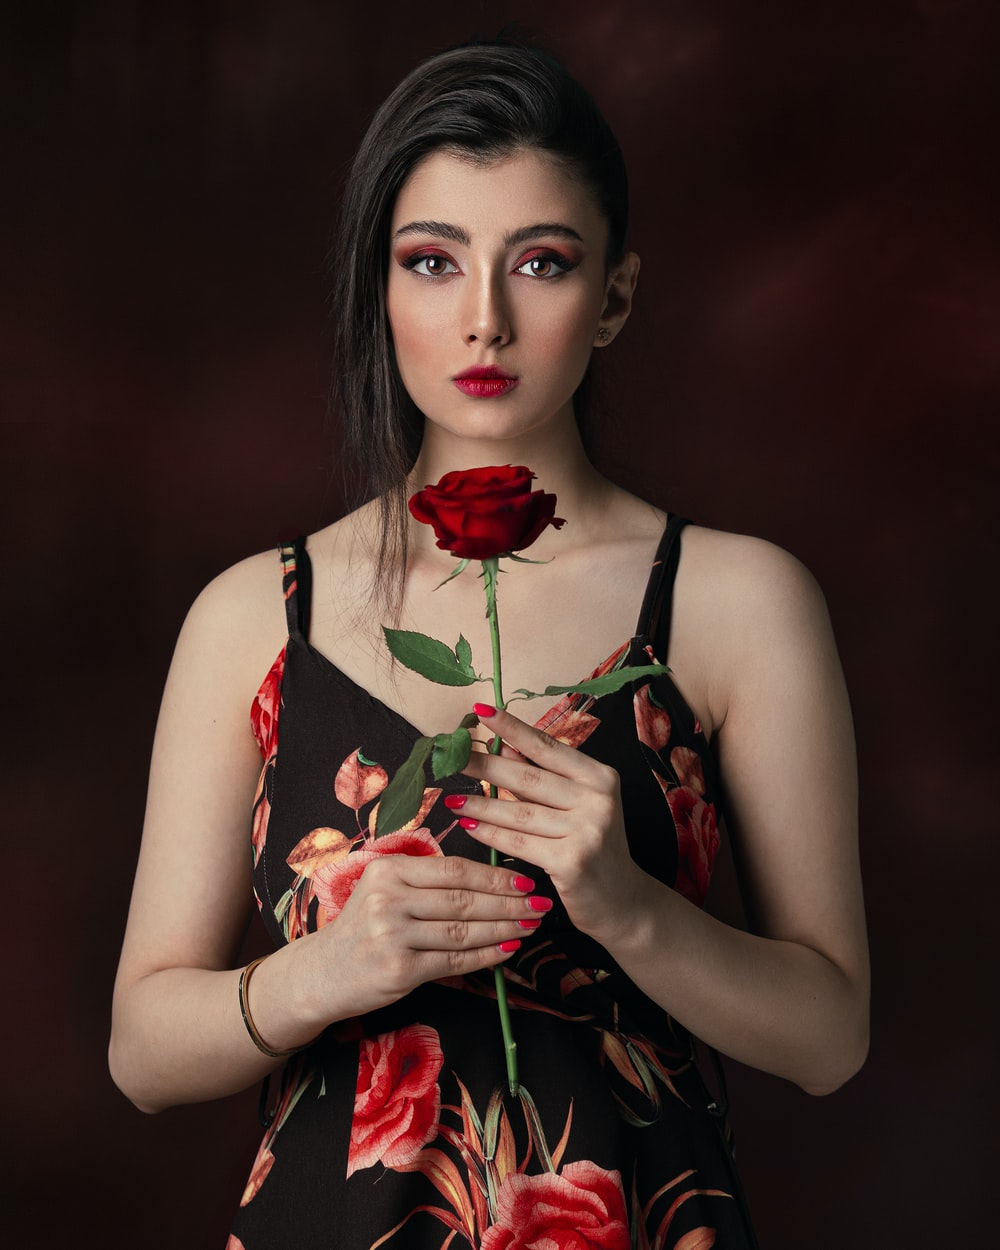 woman in black and red floral tank top holding red rose